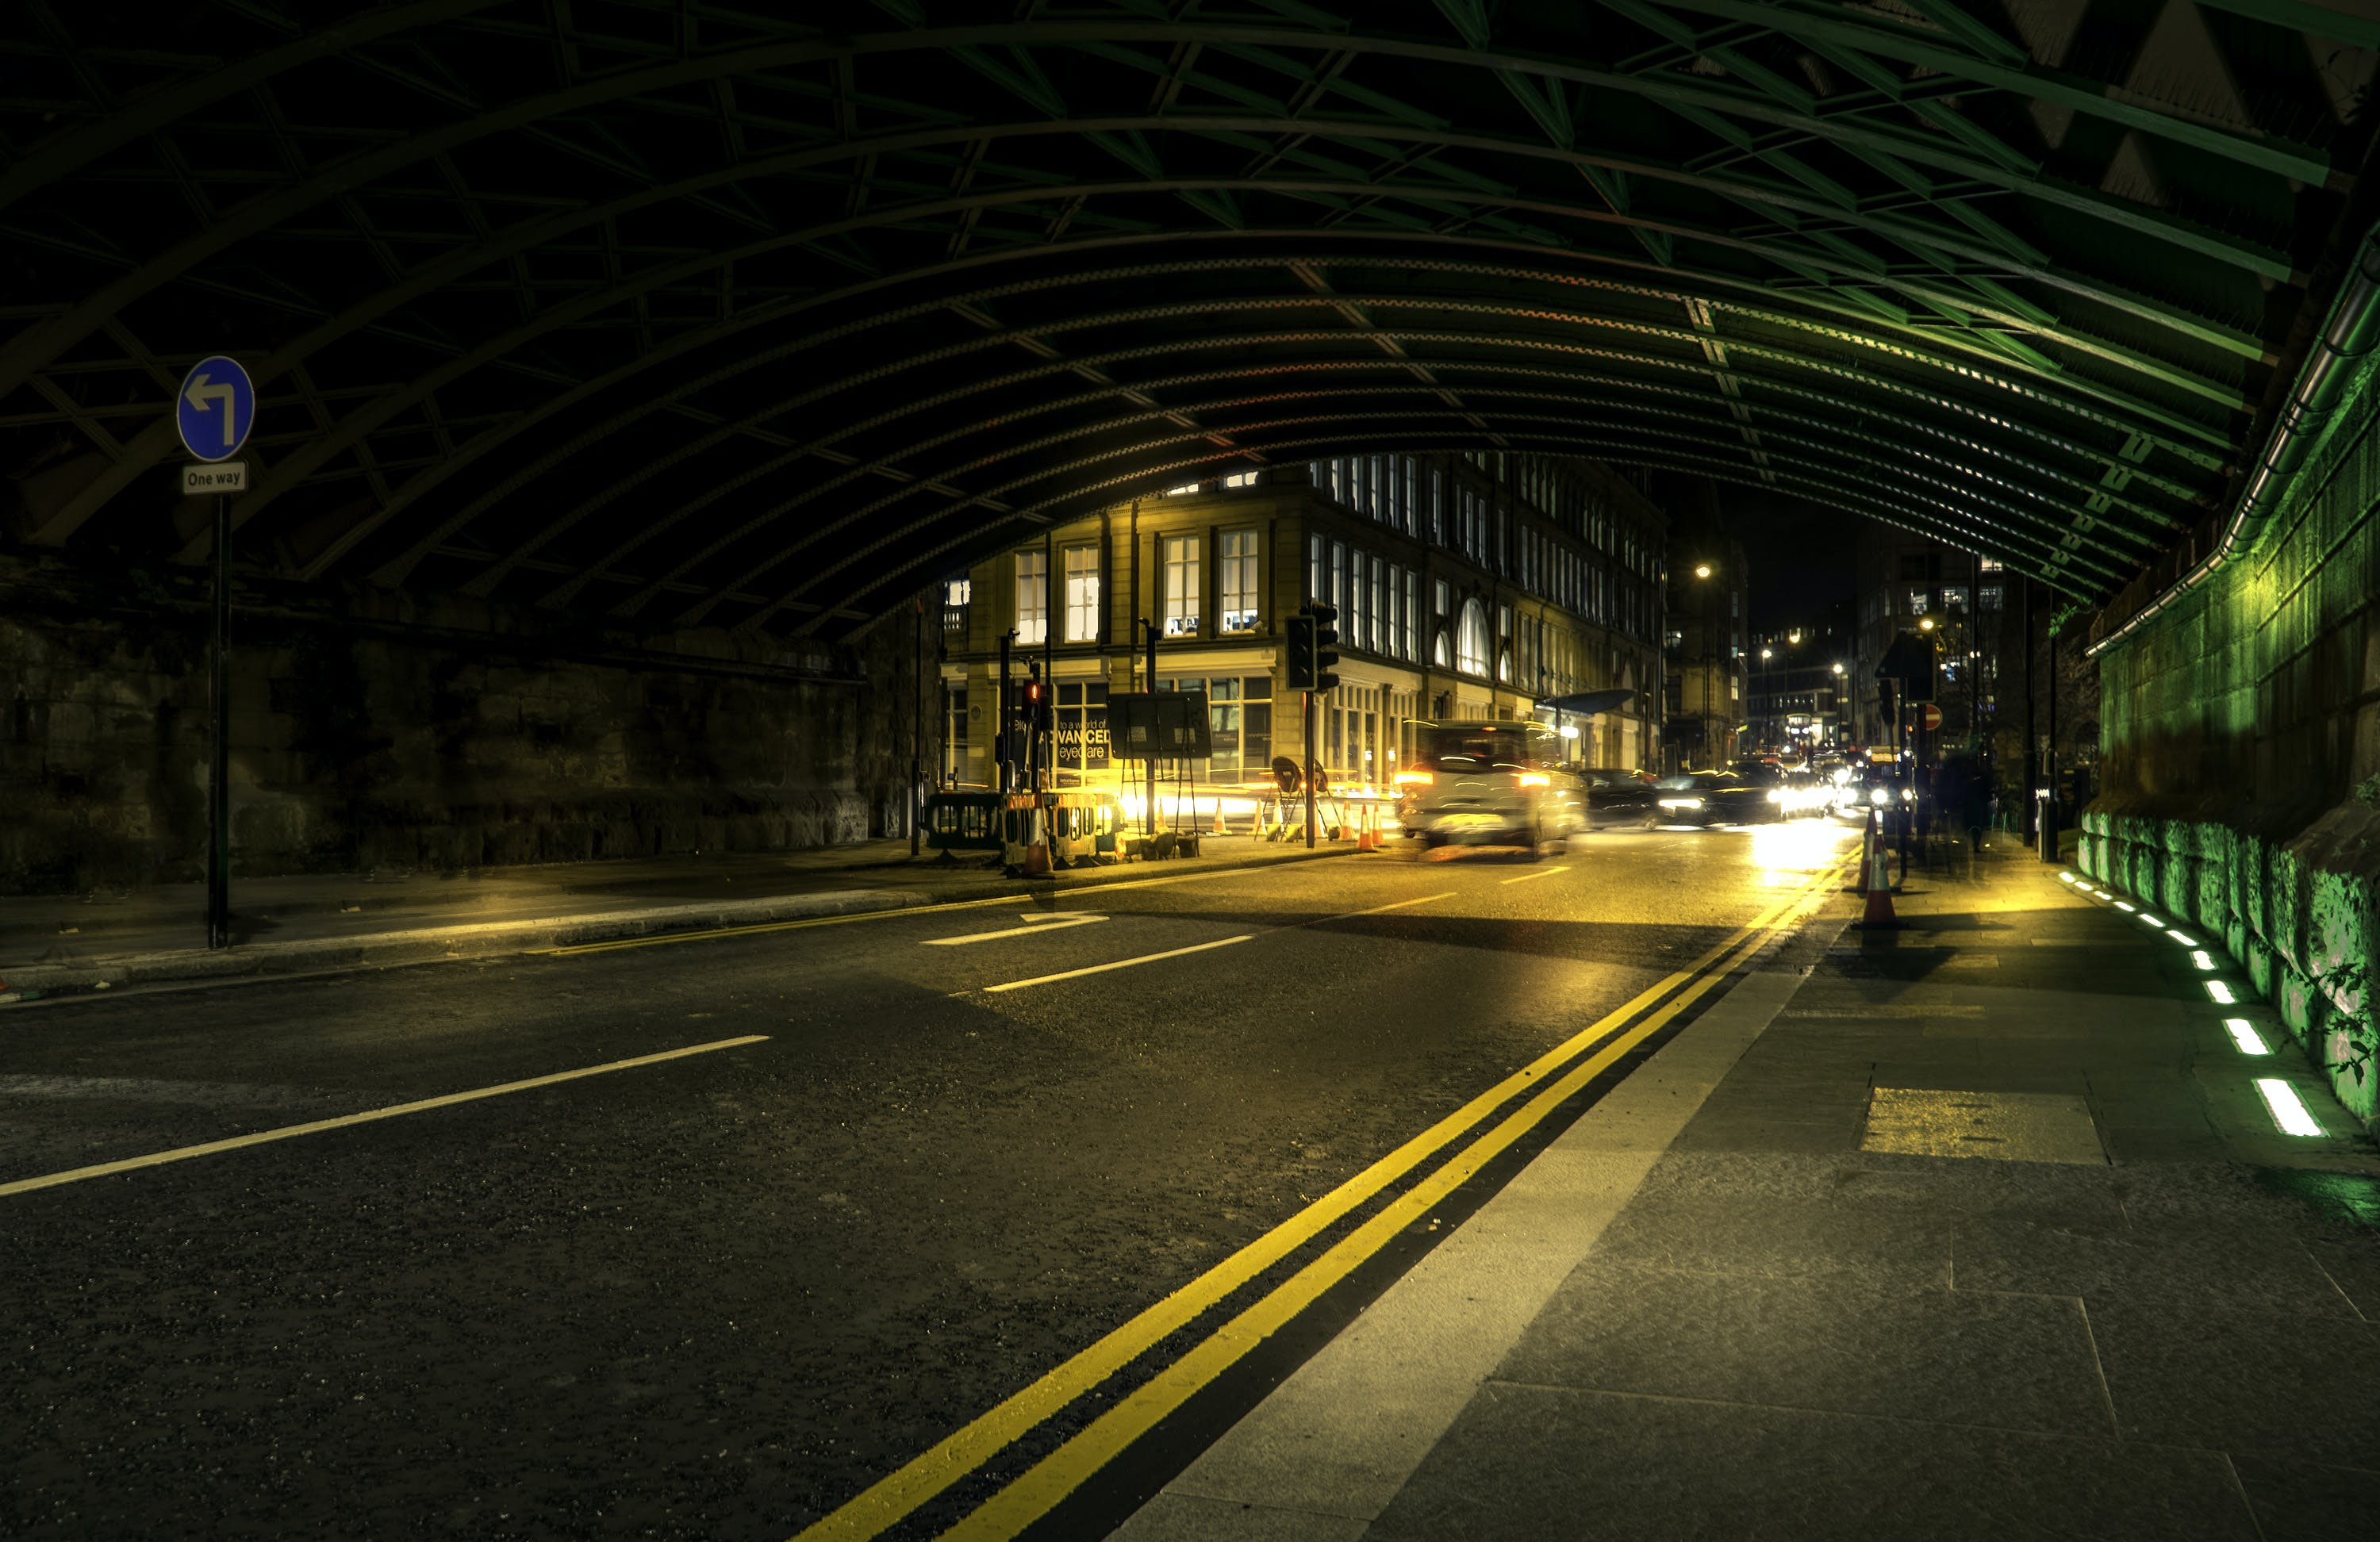 Time Lapse Photography of Underpass during Night